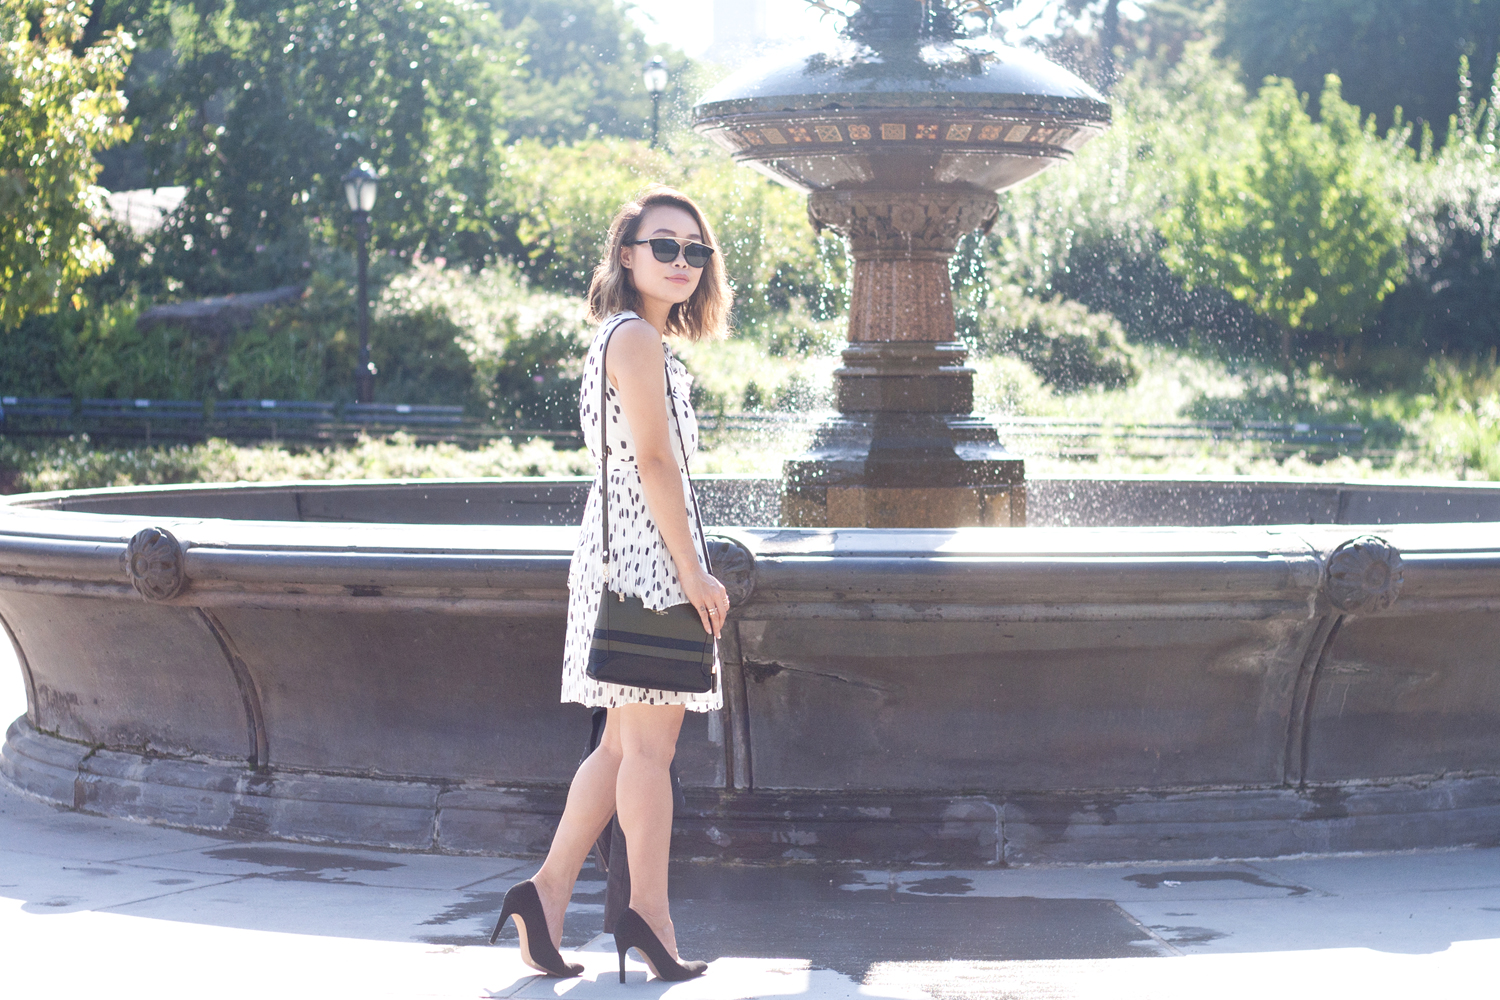 02nyc-centralpark-fountain-dots-dress-travel-fashion-style